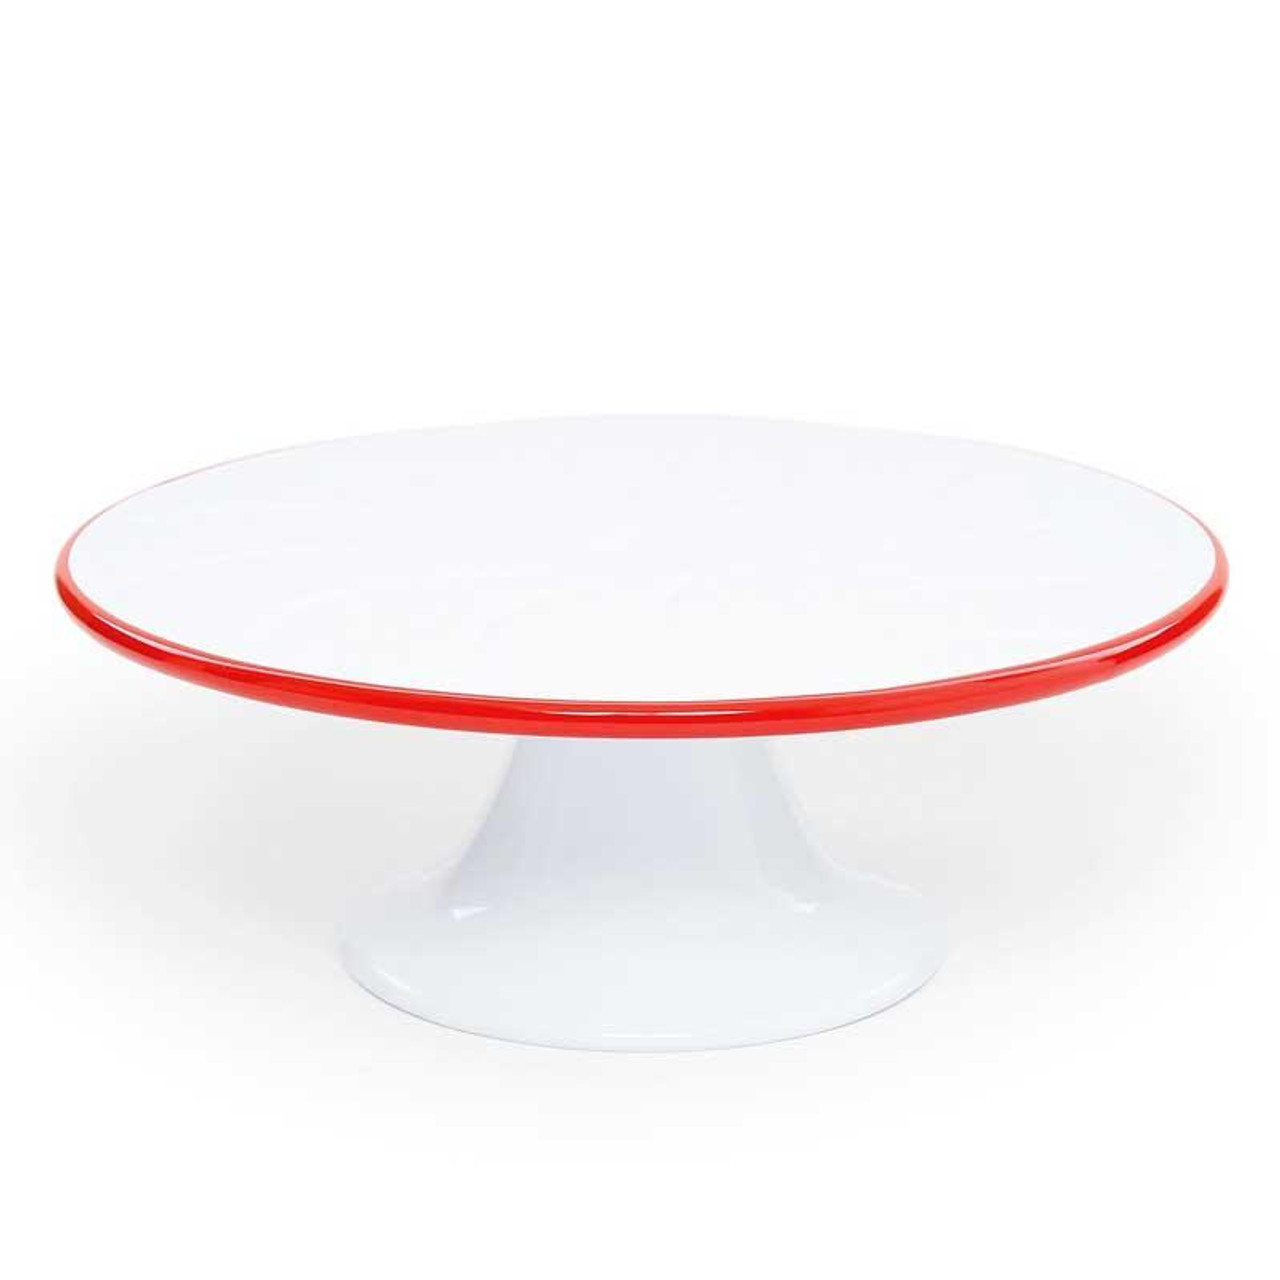 Classic White Enamel Cake Stand with Red Rim